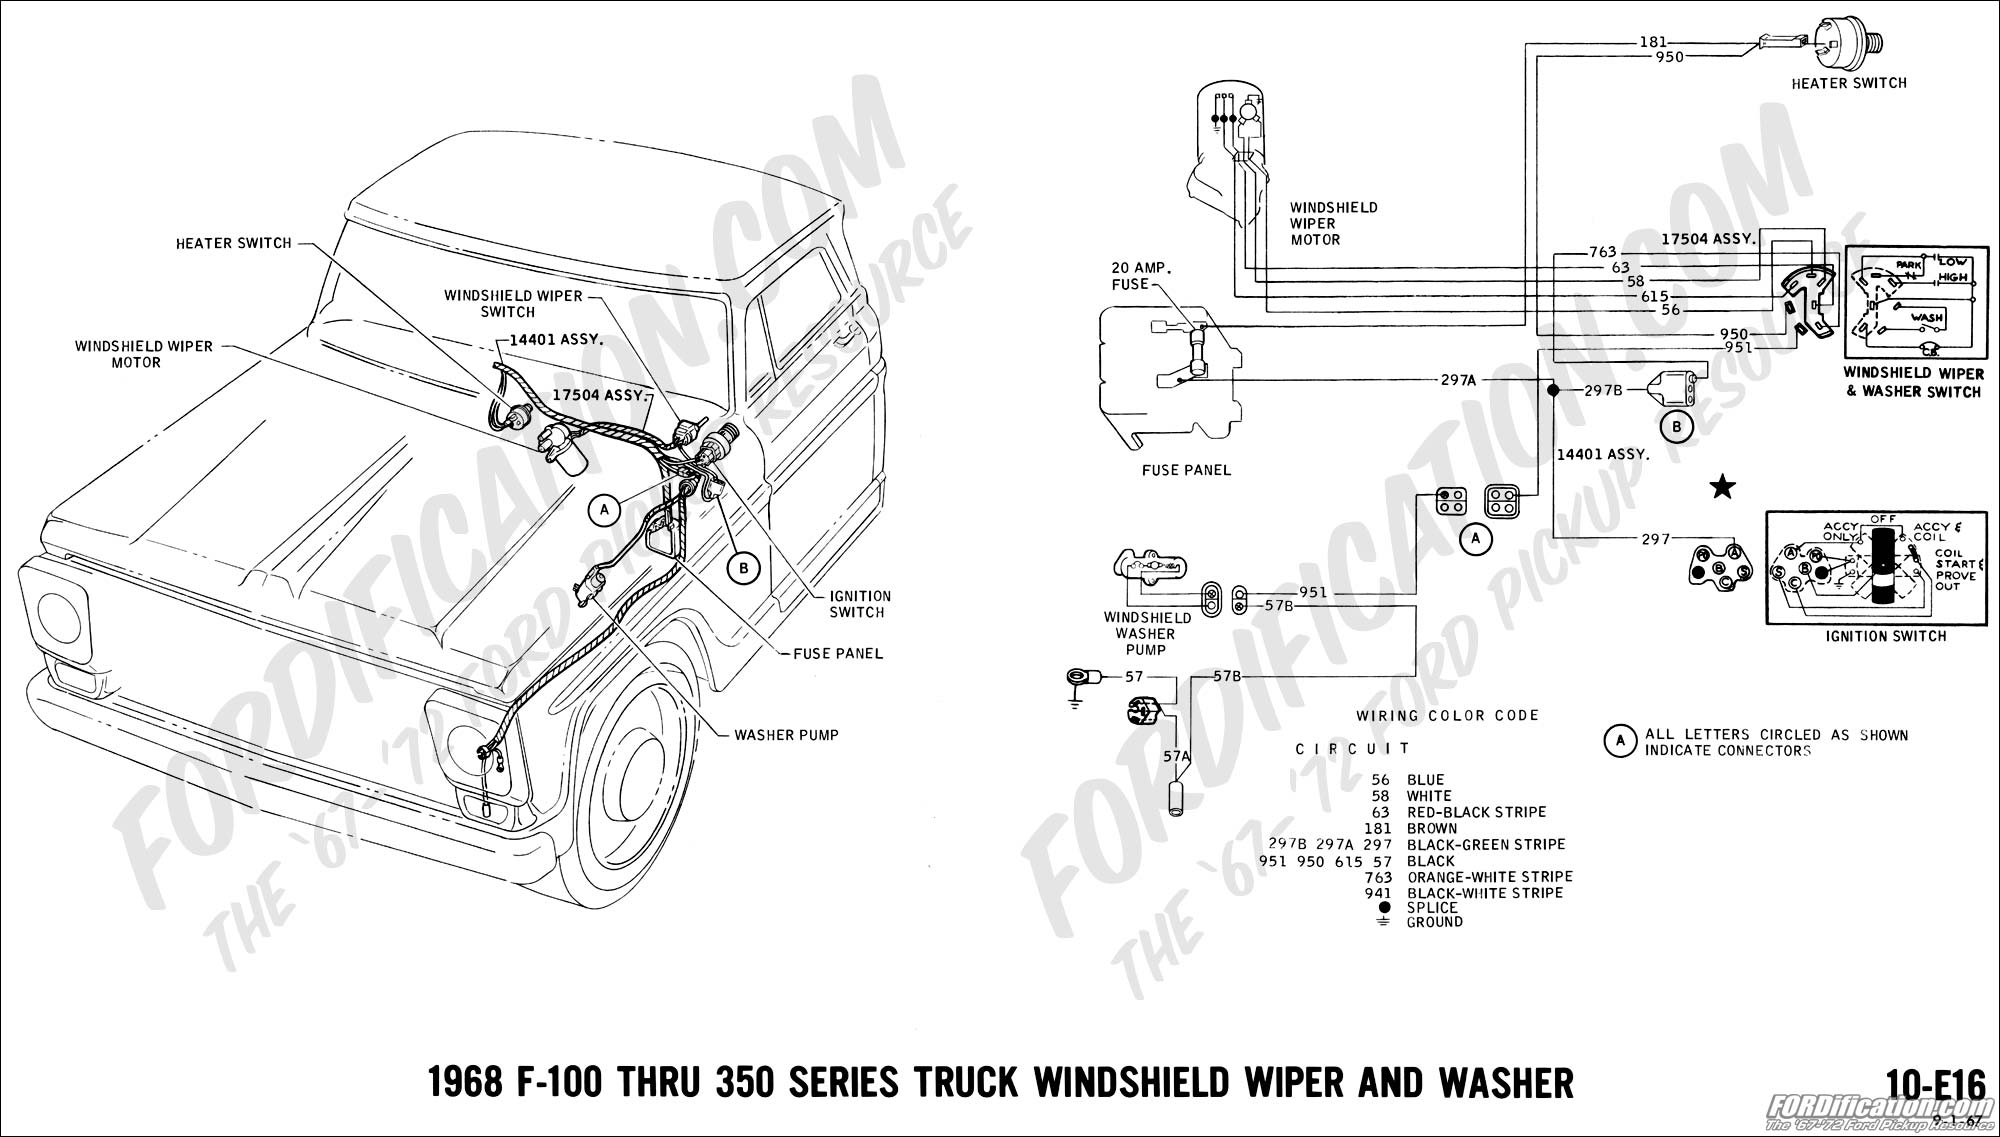 1997 Ford F150 Wiring Diagram For Radio from www.fordification.com